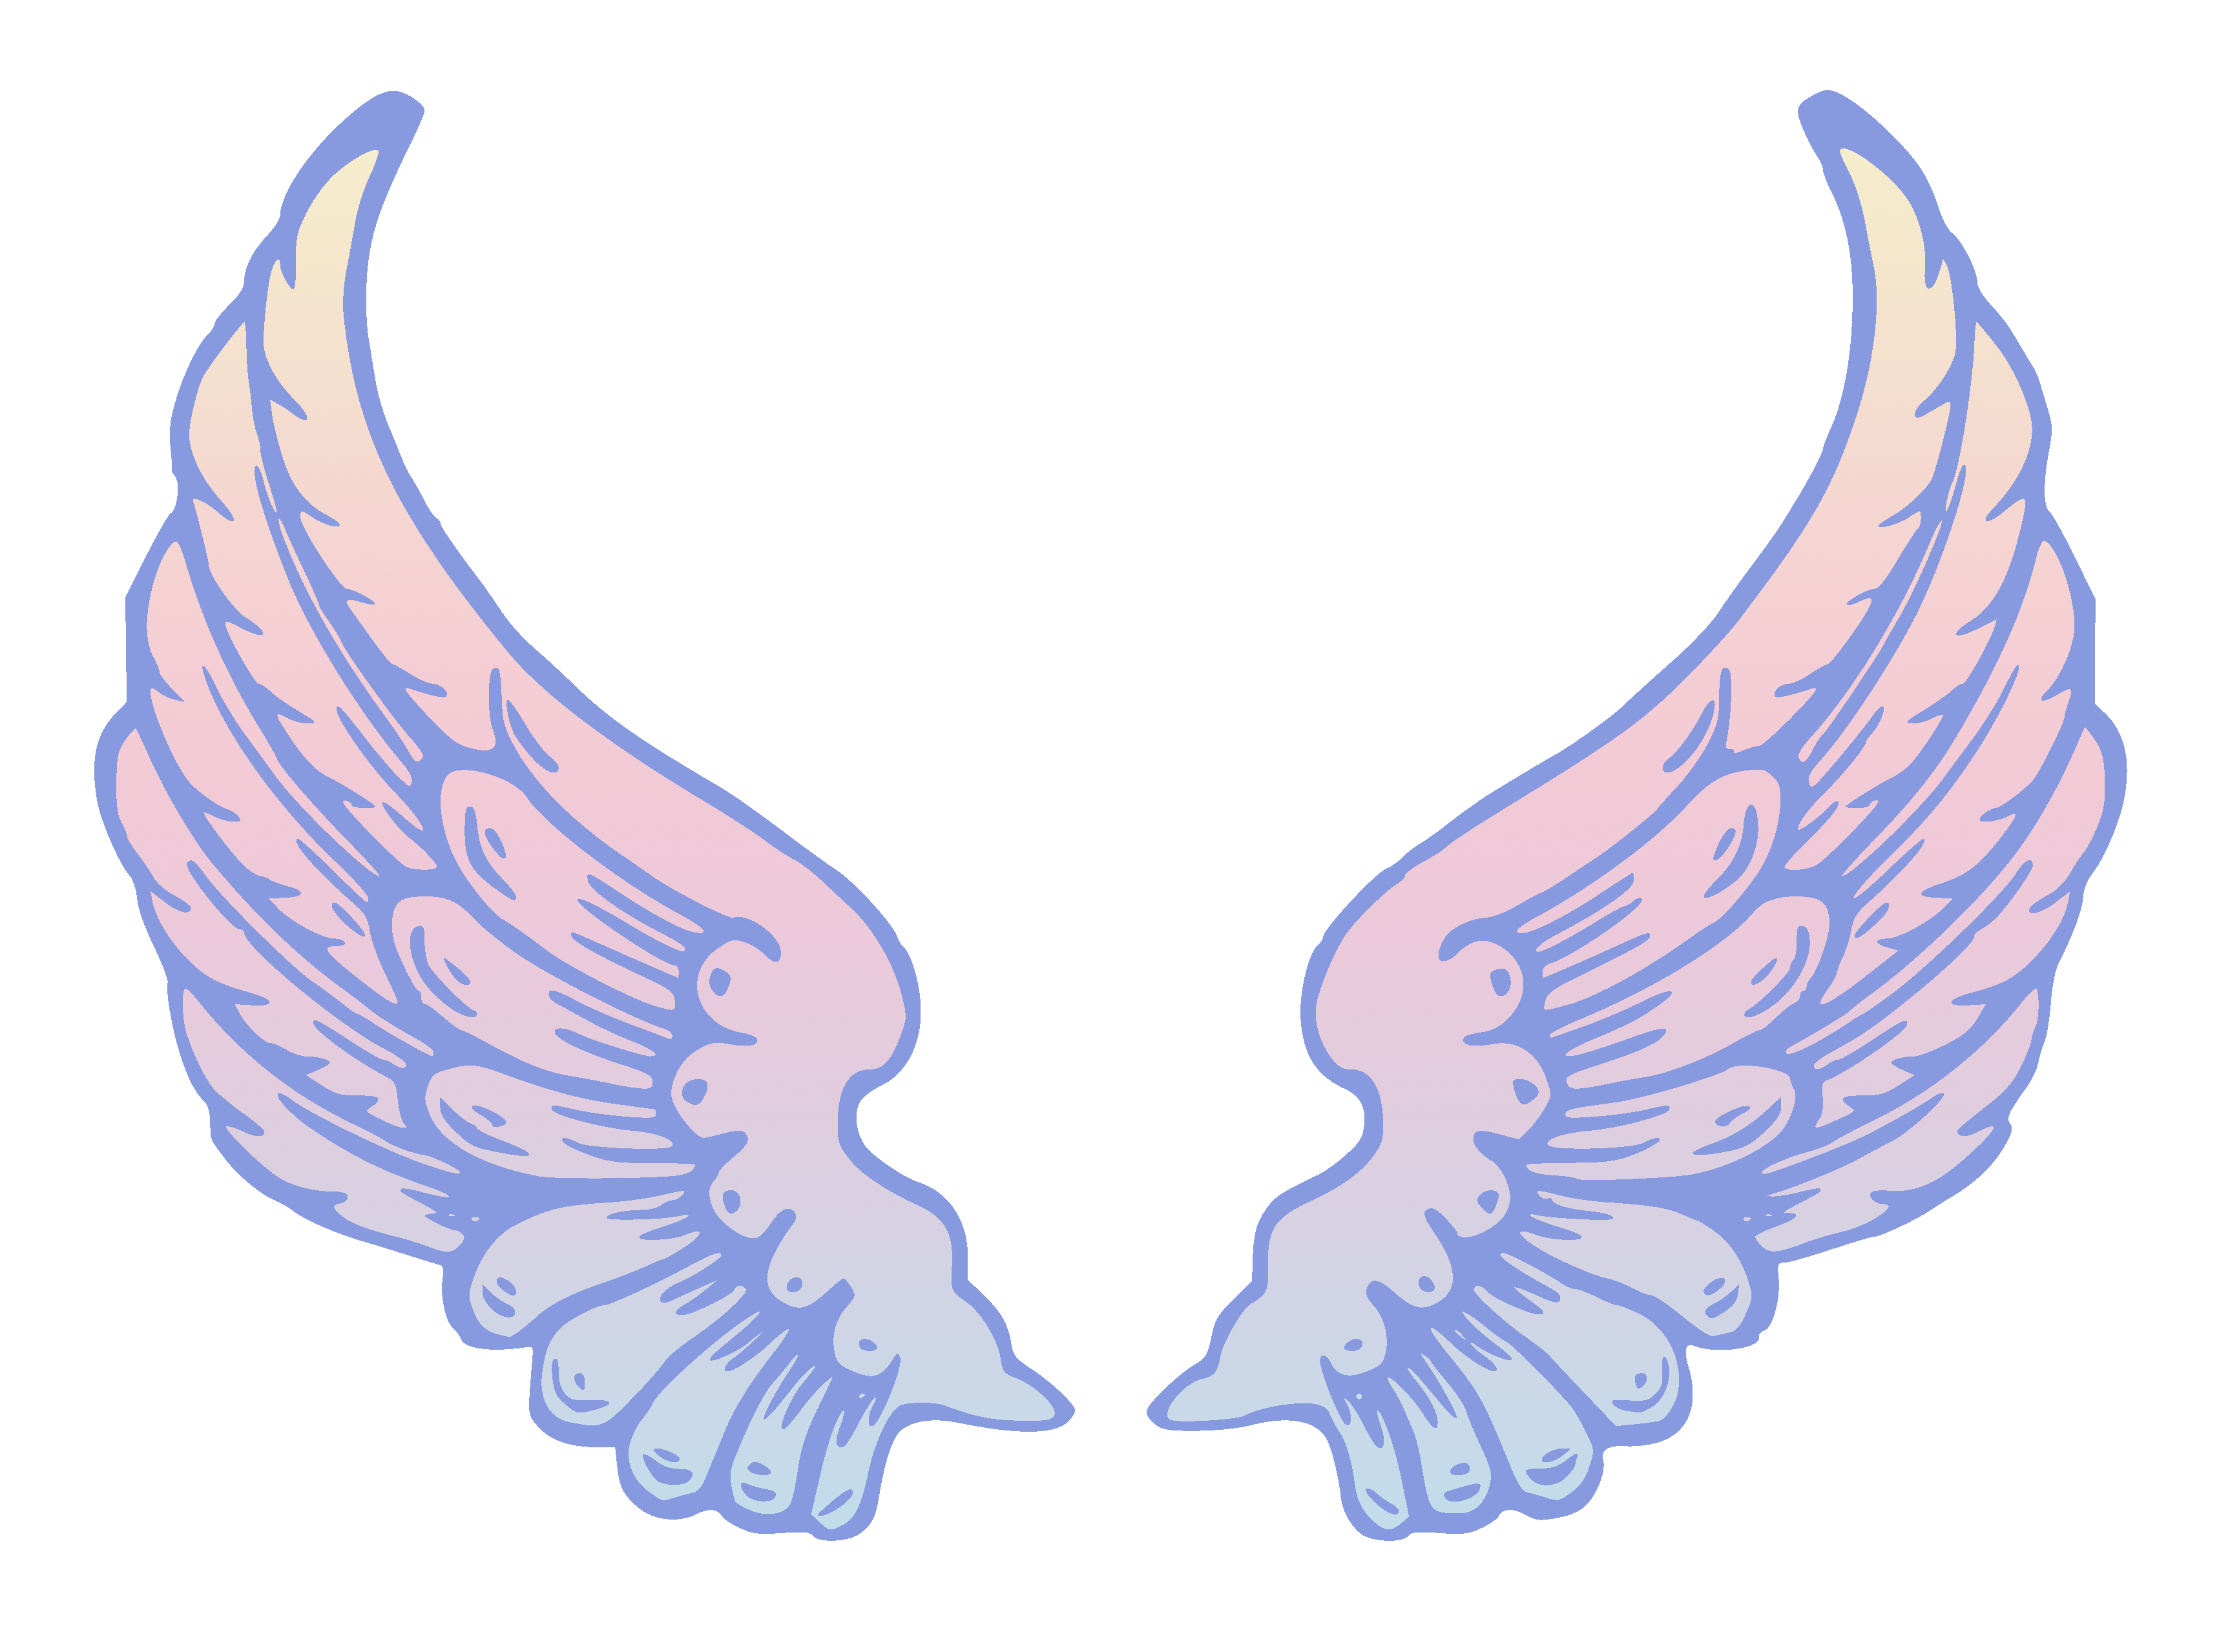 Clipart Angel Wings-clipart angel wings-11